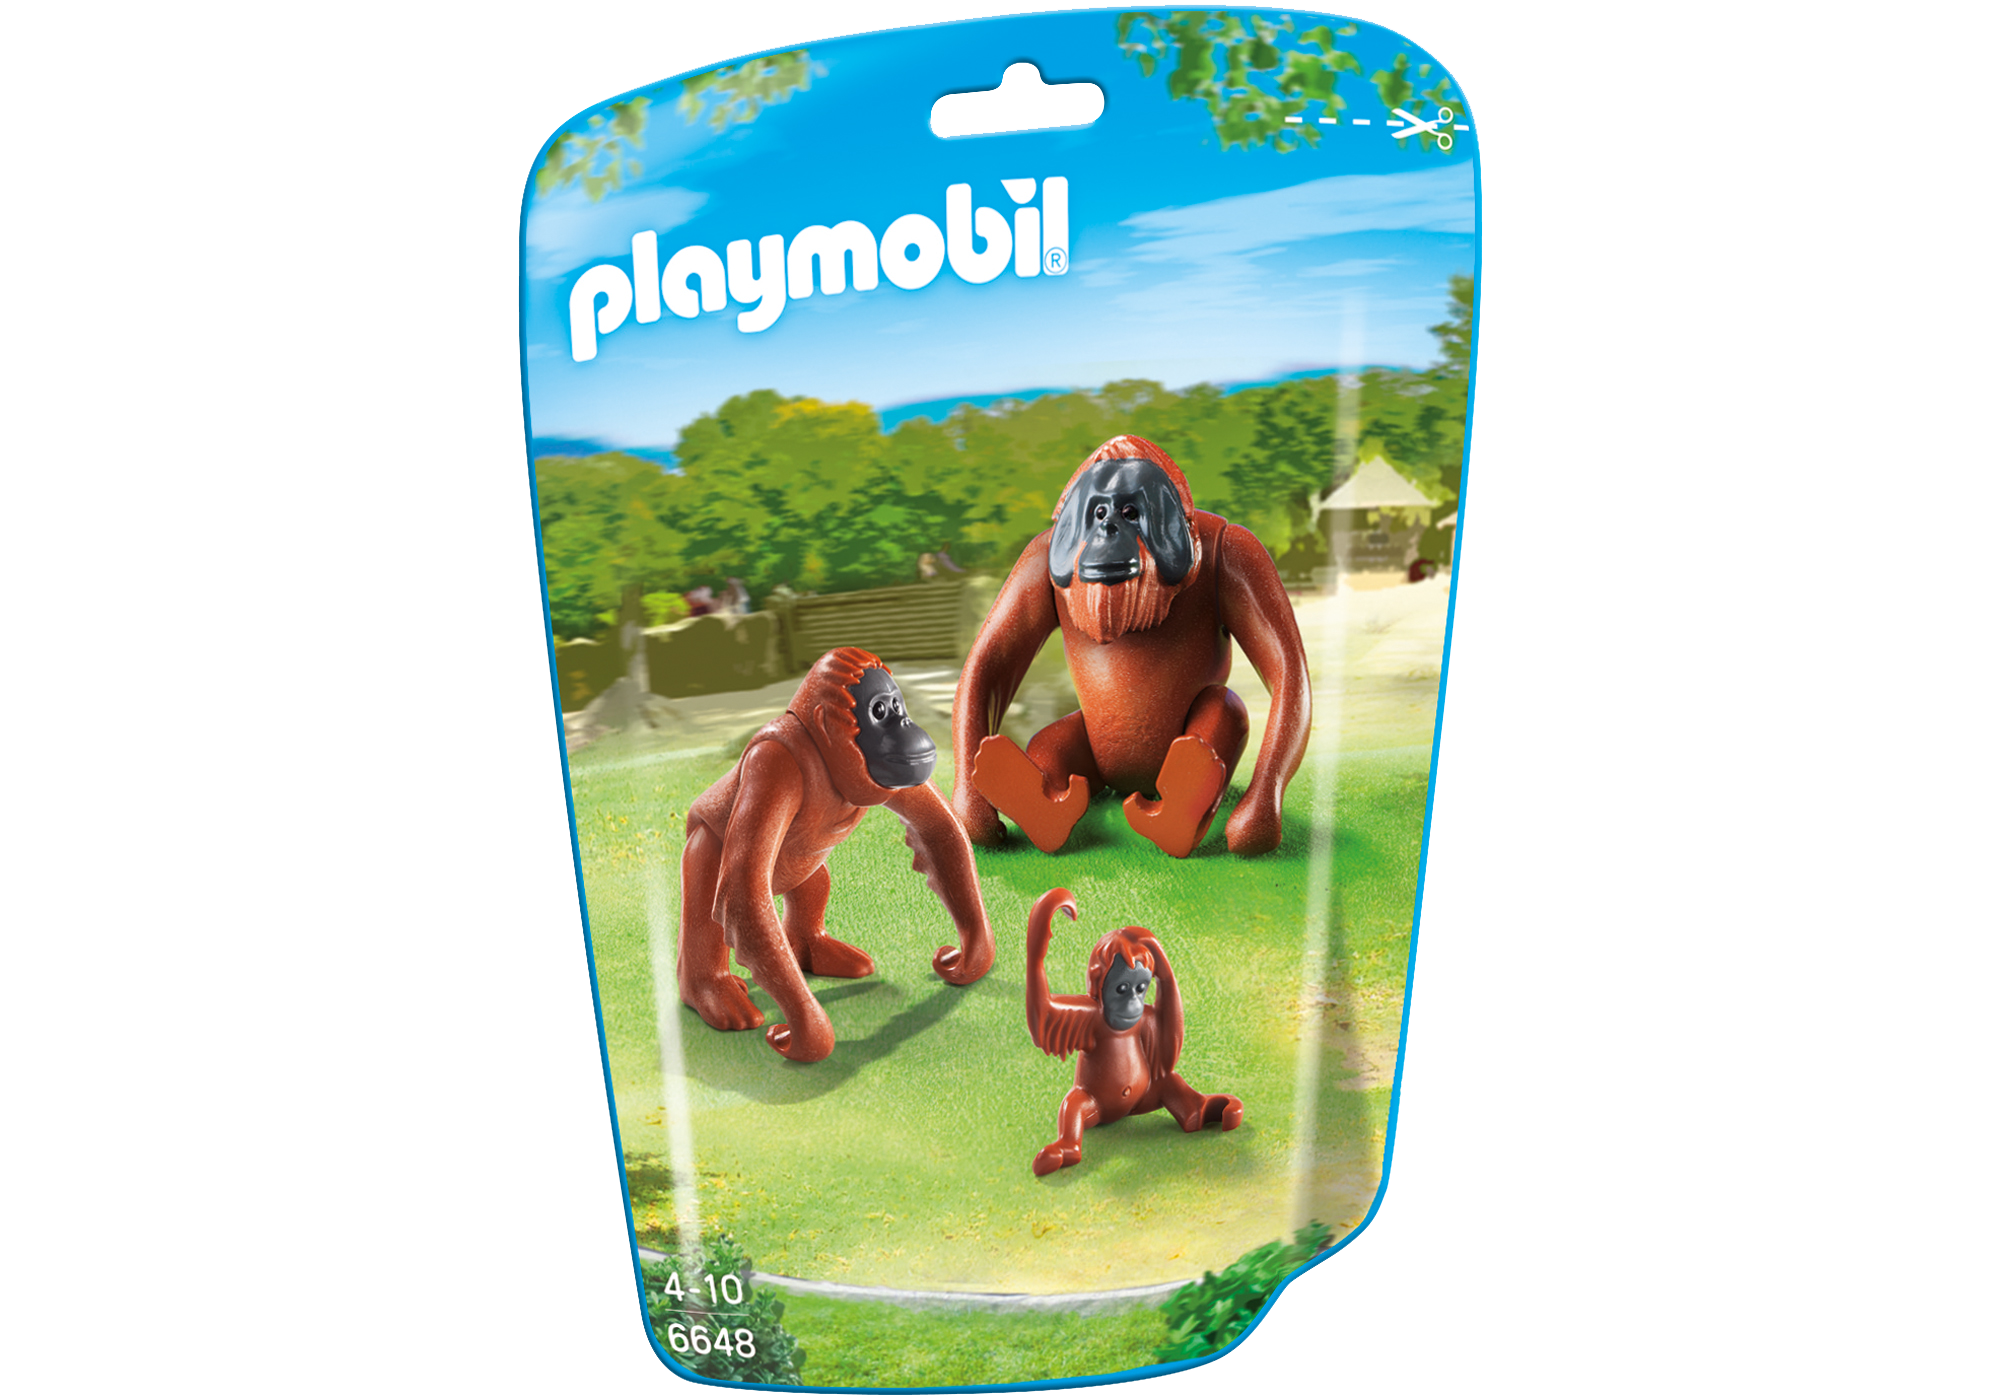 http://media.playmobil.com/i/playmobil/6648_product_box_front